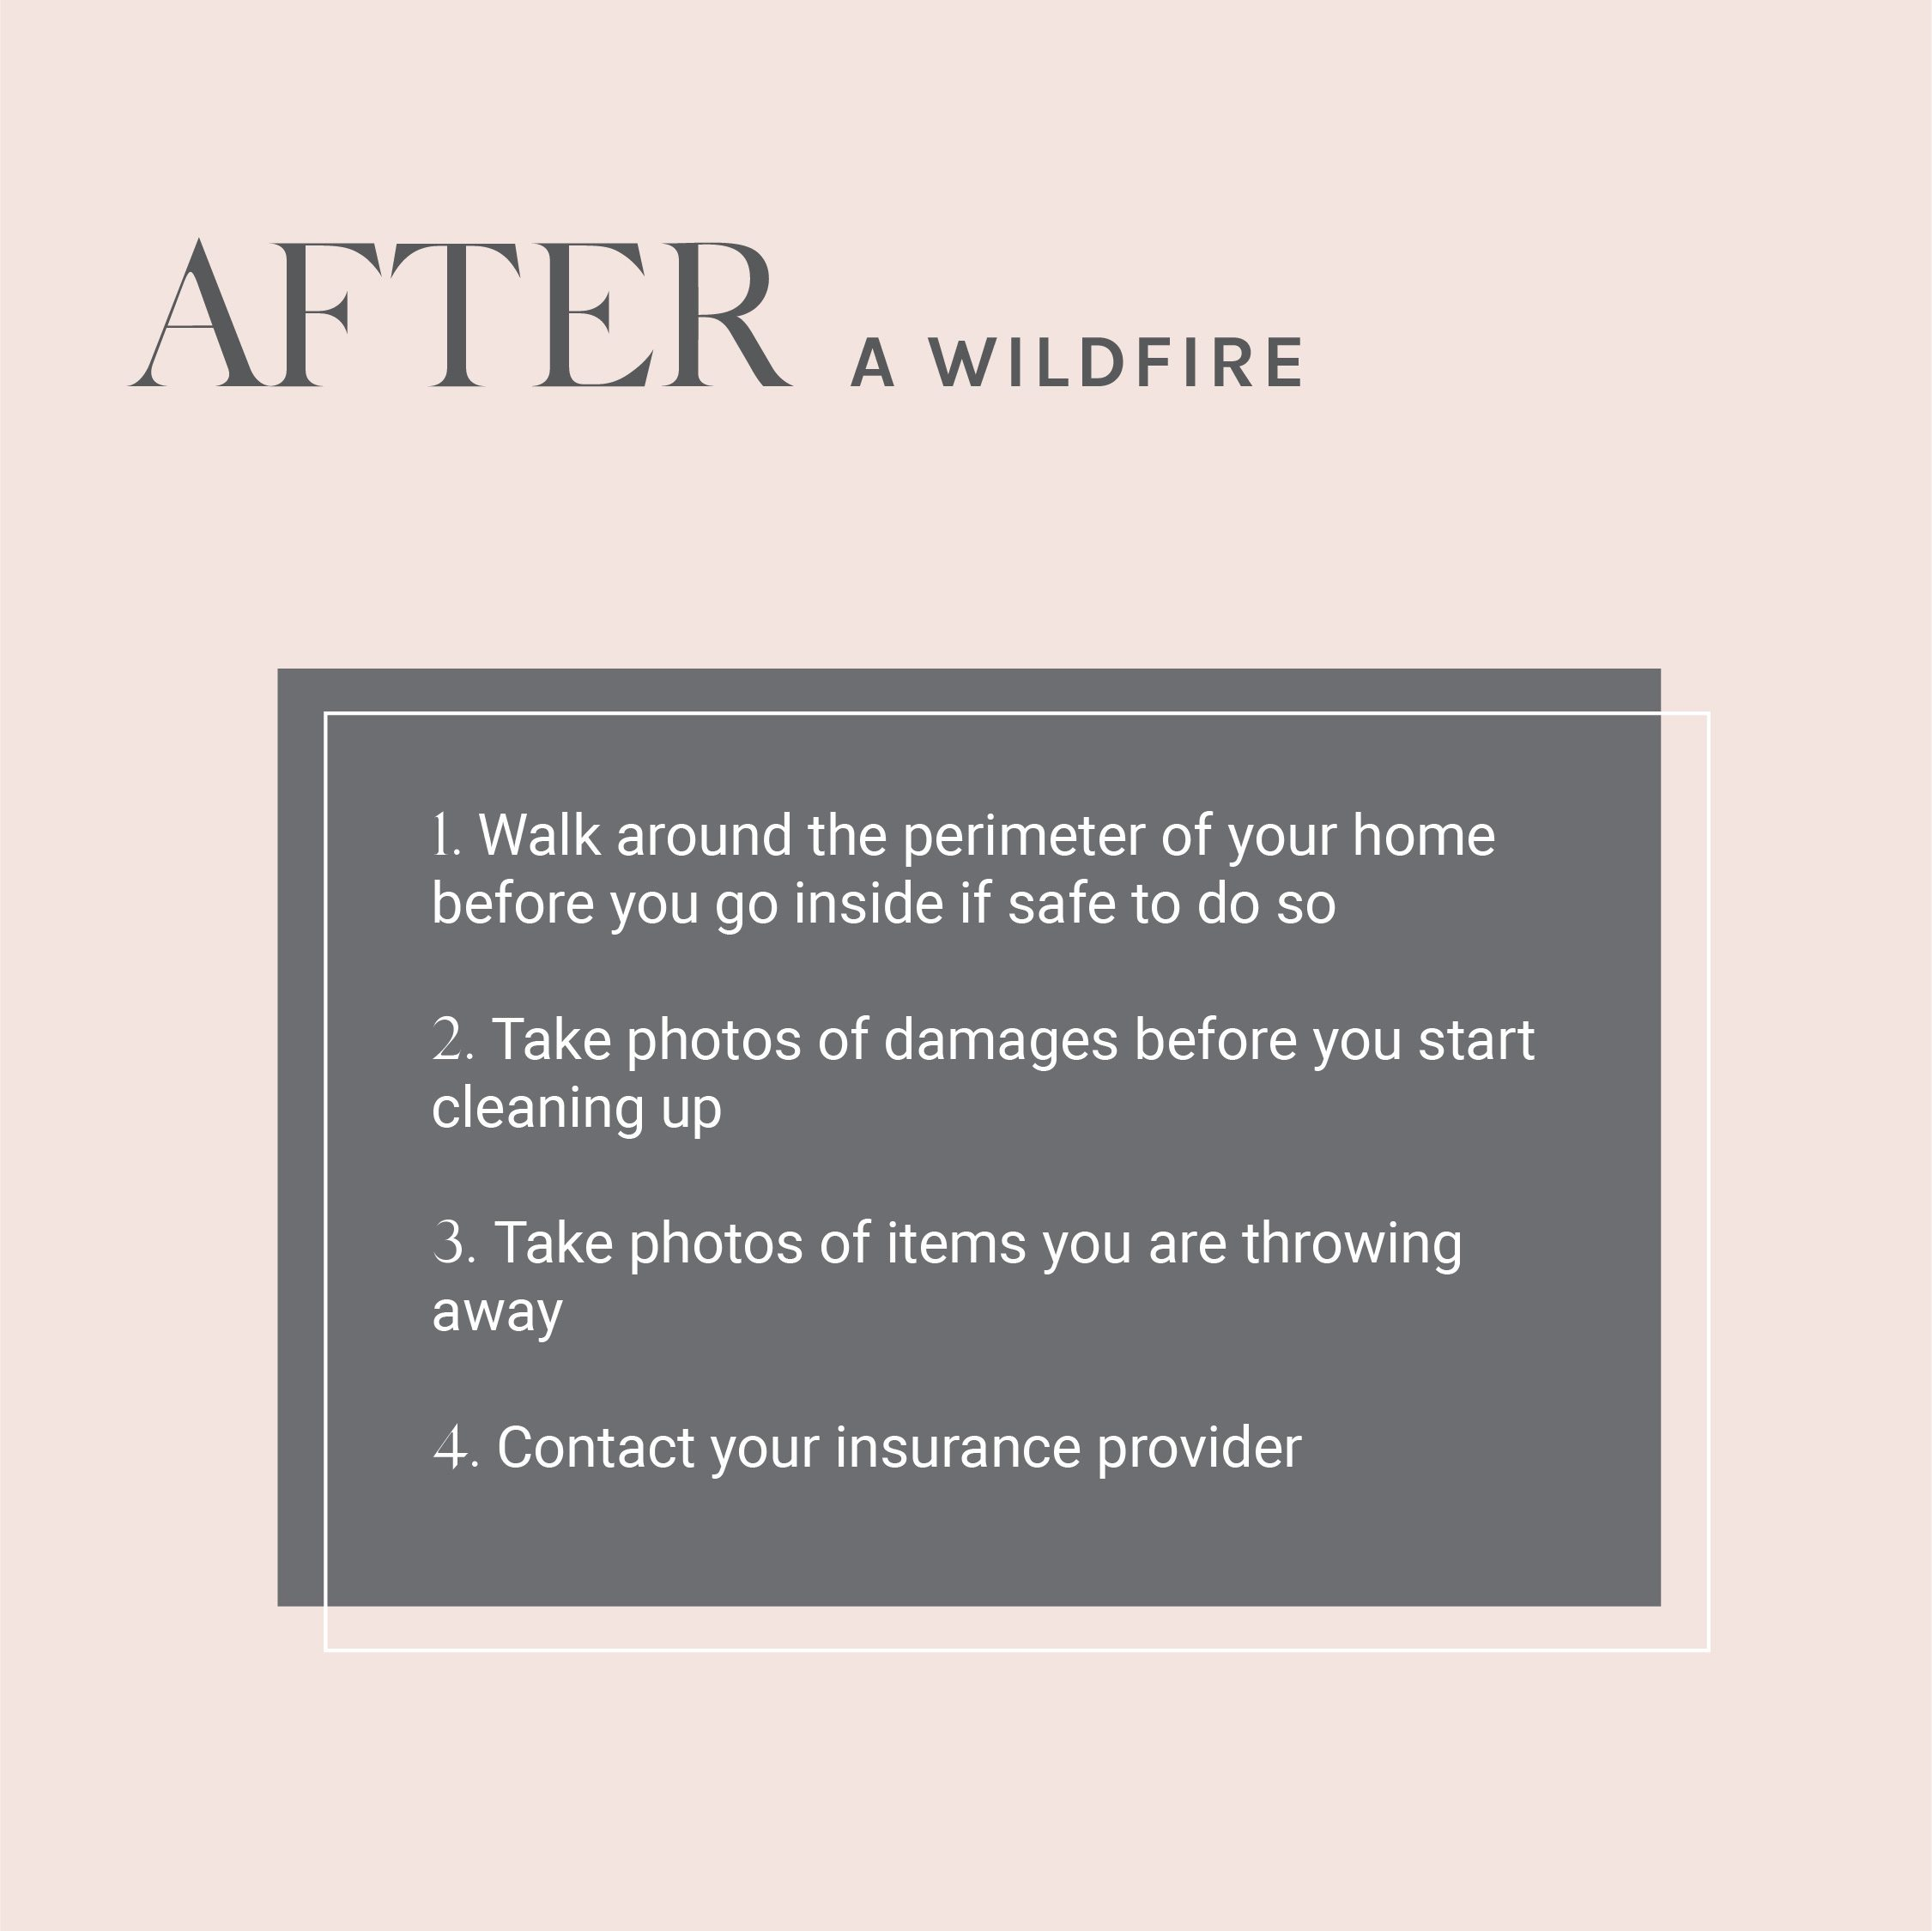 How to return home after a wildfires